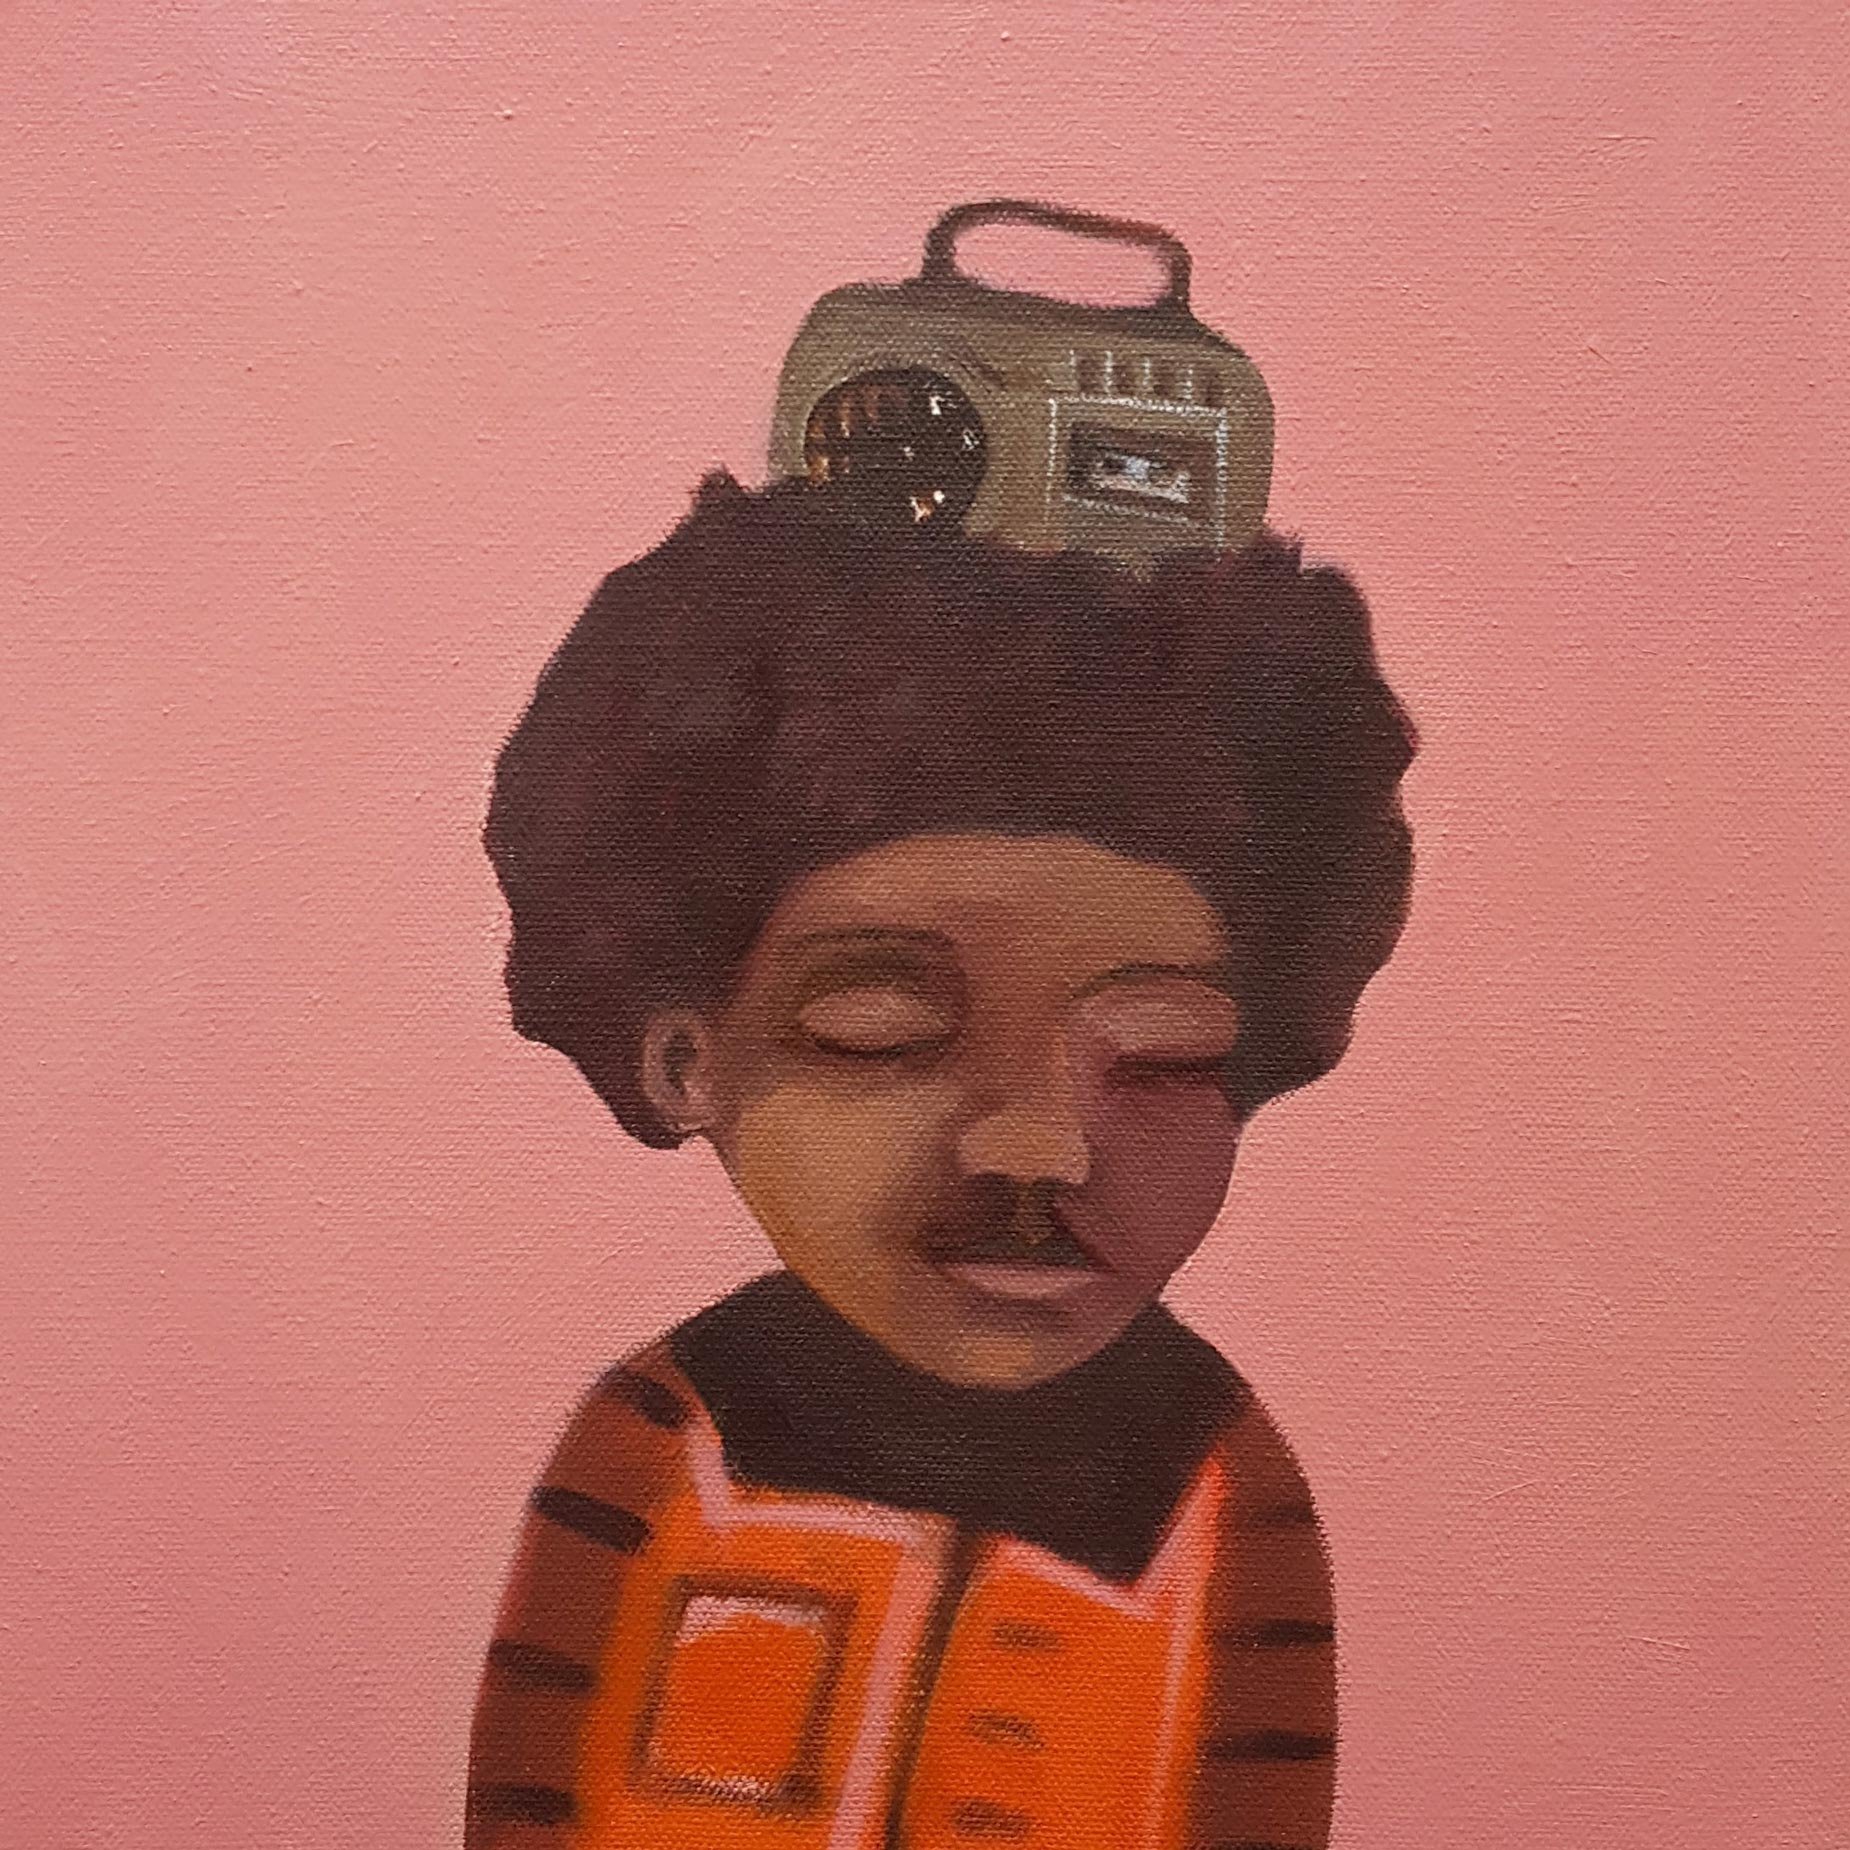 '80s Radio Head' by Siobhan Purdy